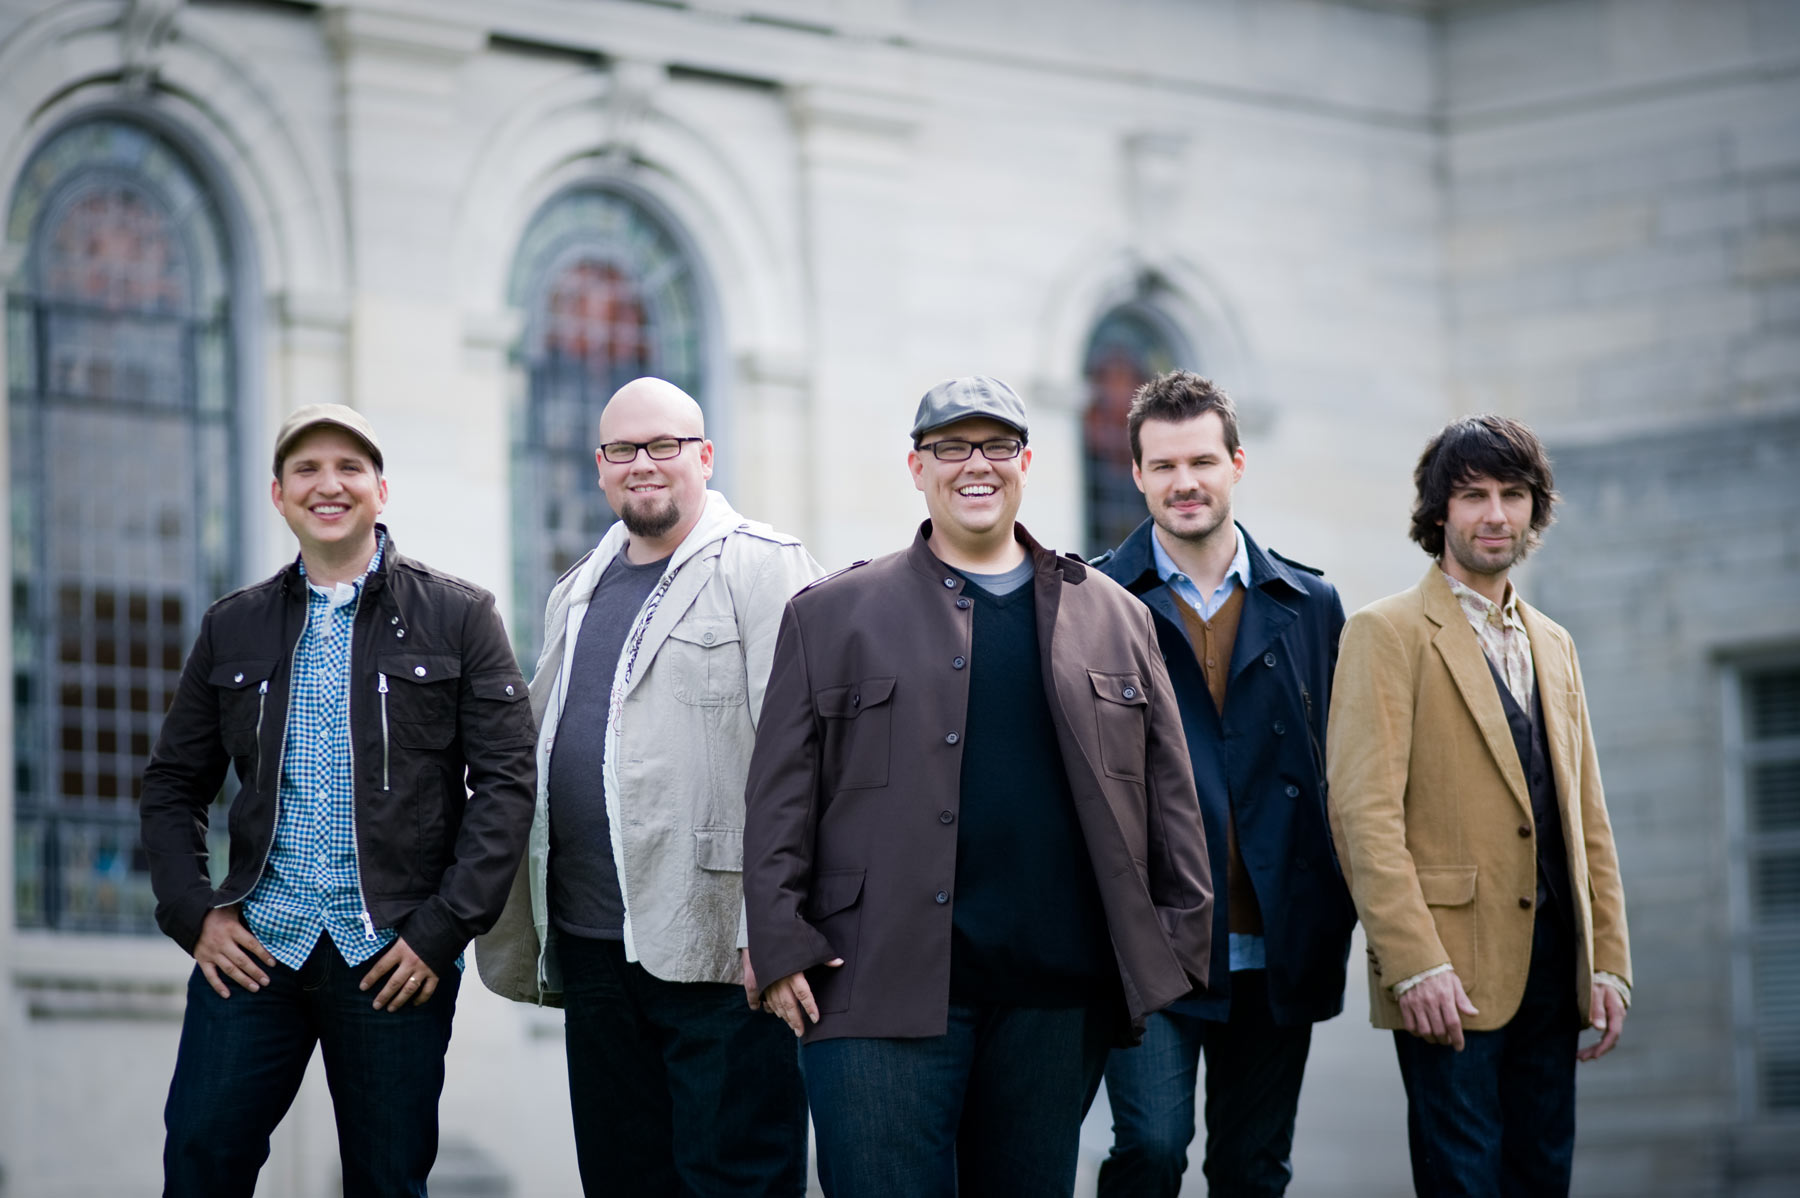 Big Daddy Weave Discography Big Daddy Weave Artist Database